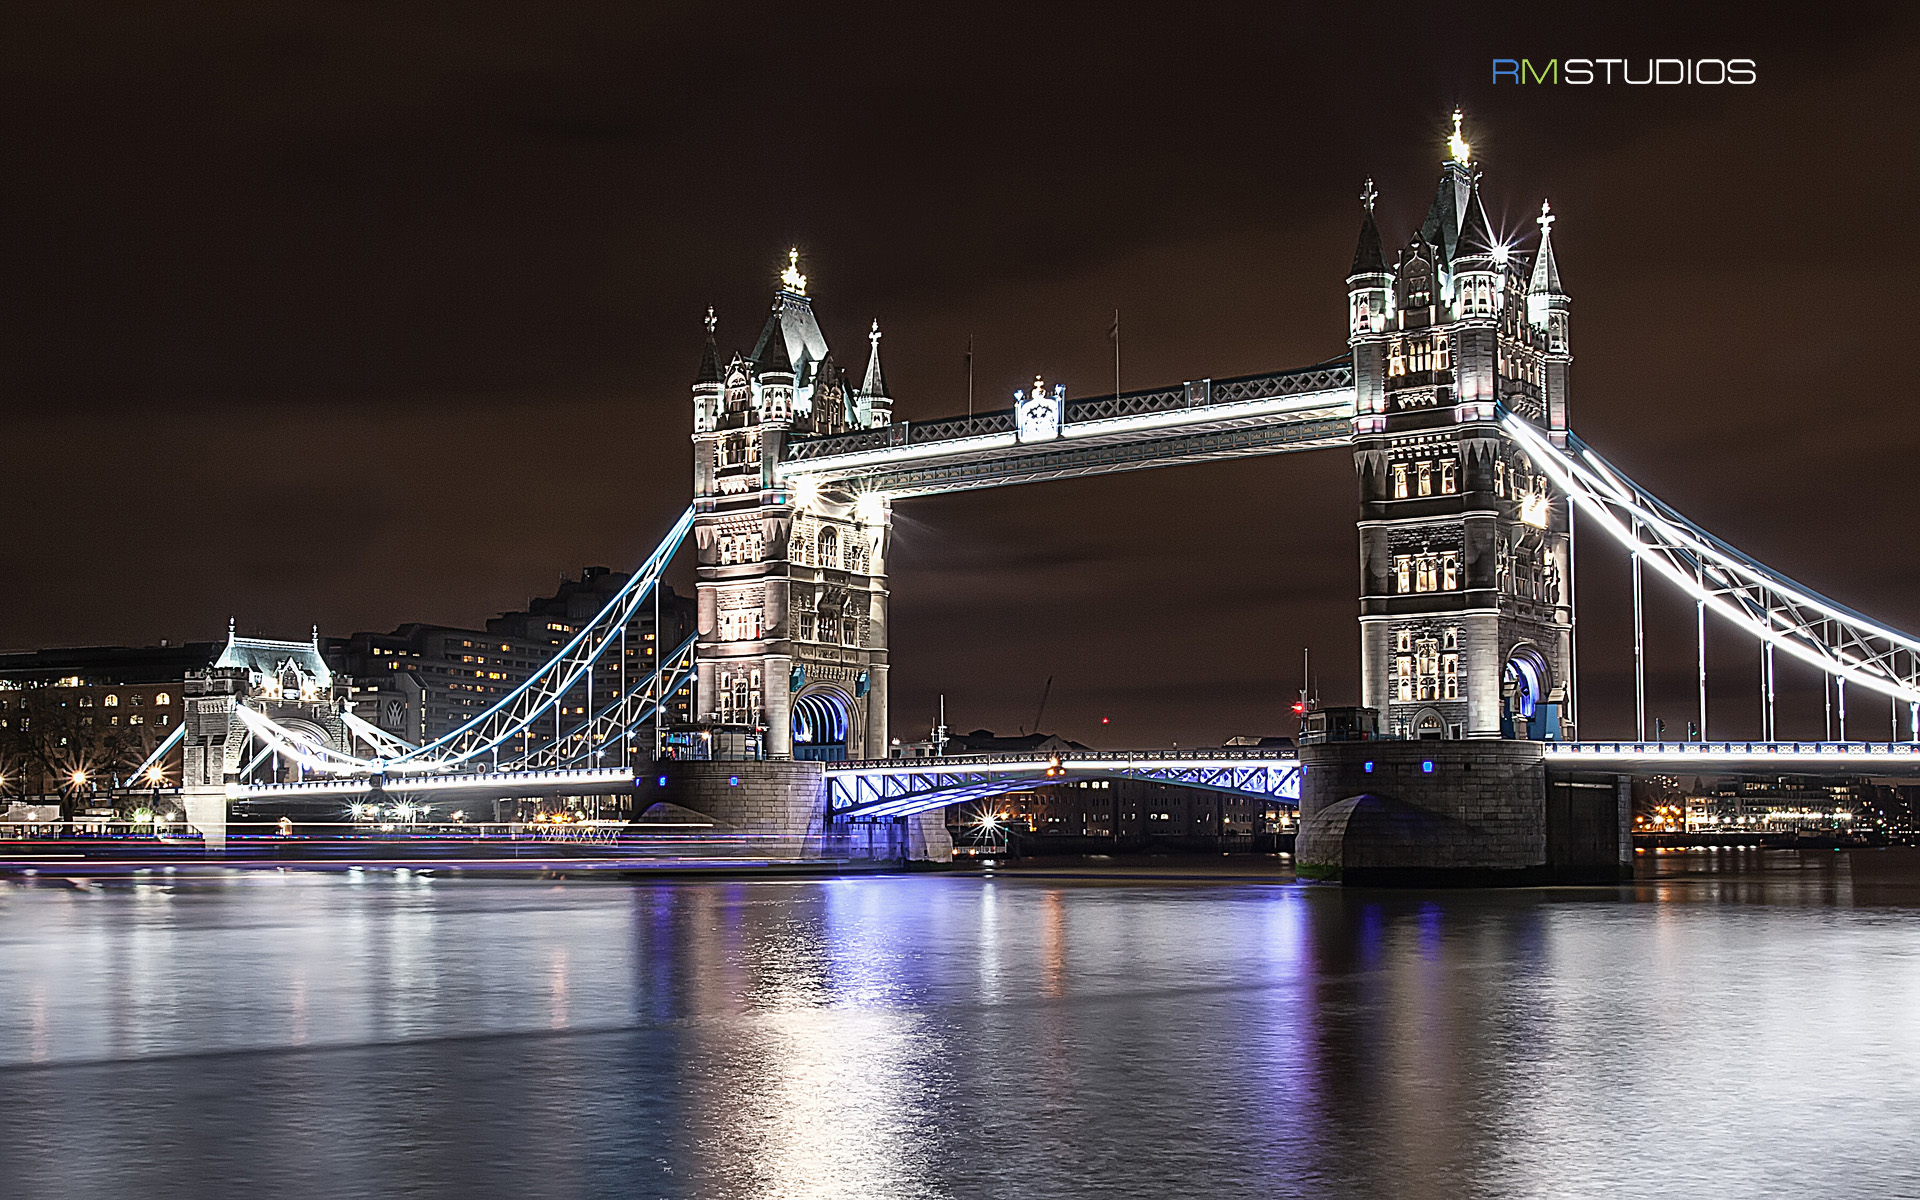 Tower Bridge at Night 764.25 Kb